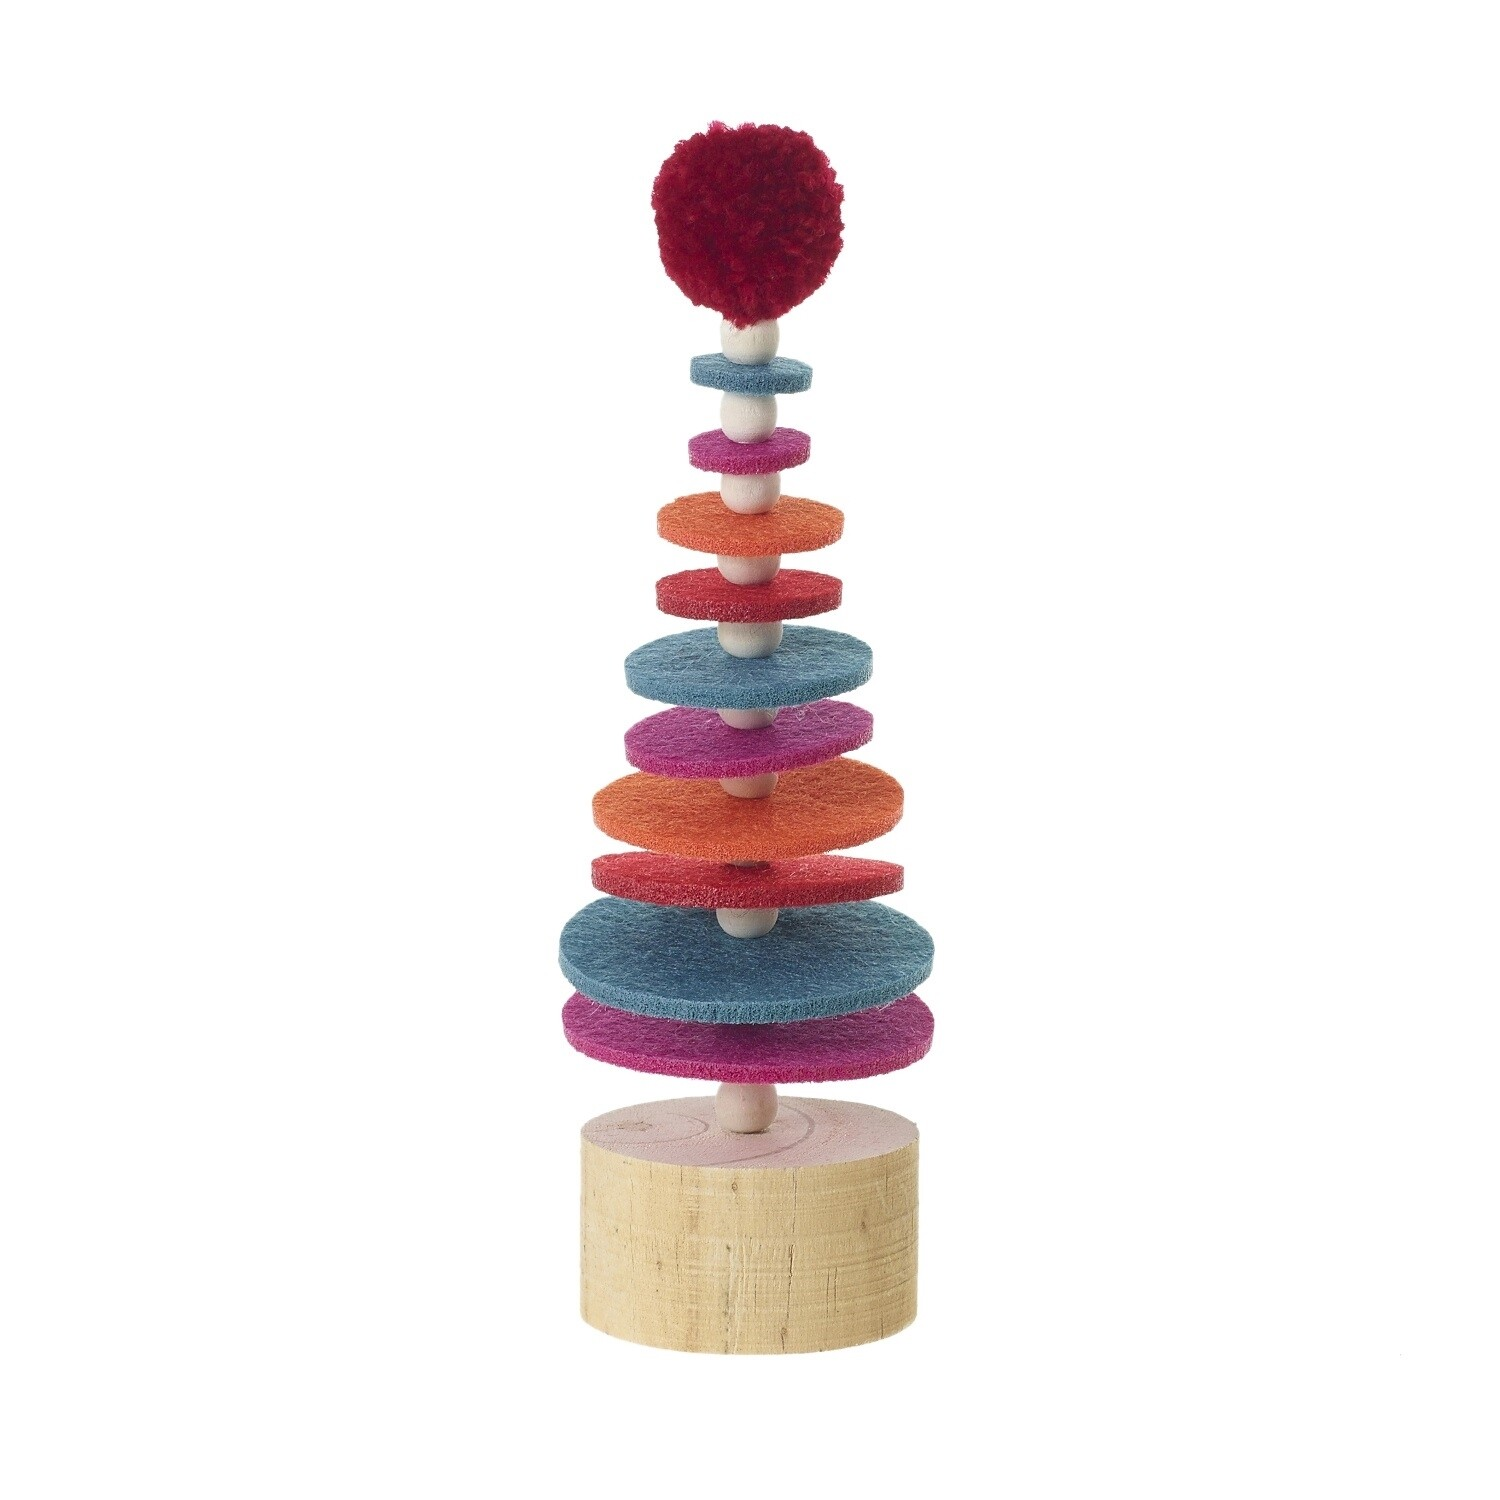 "Sugar Plum Tree - Multicolor - Small - 7.5""H x 2.25""W"